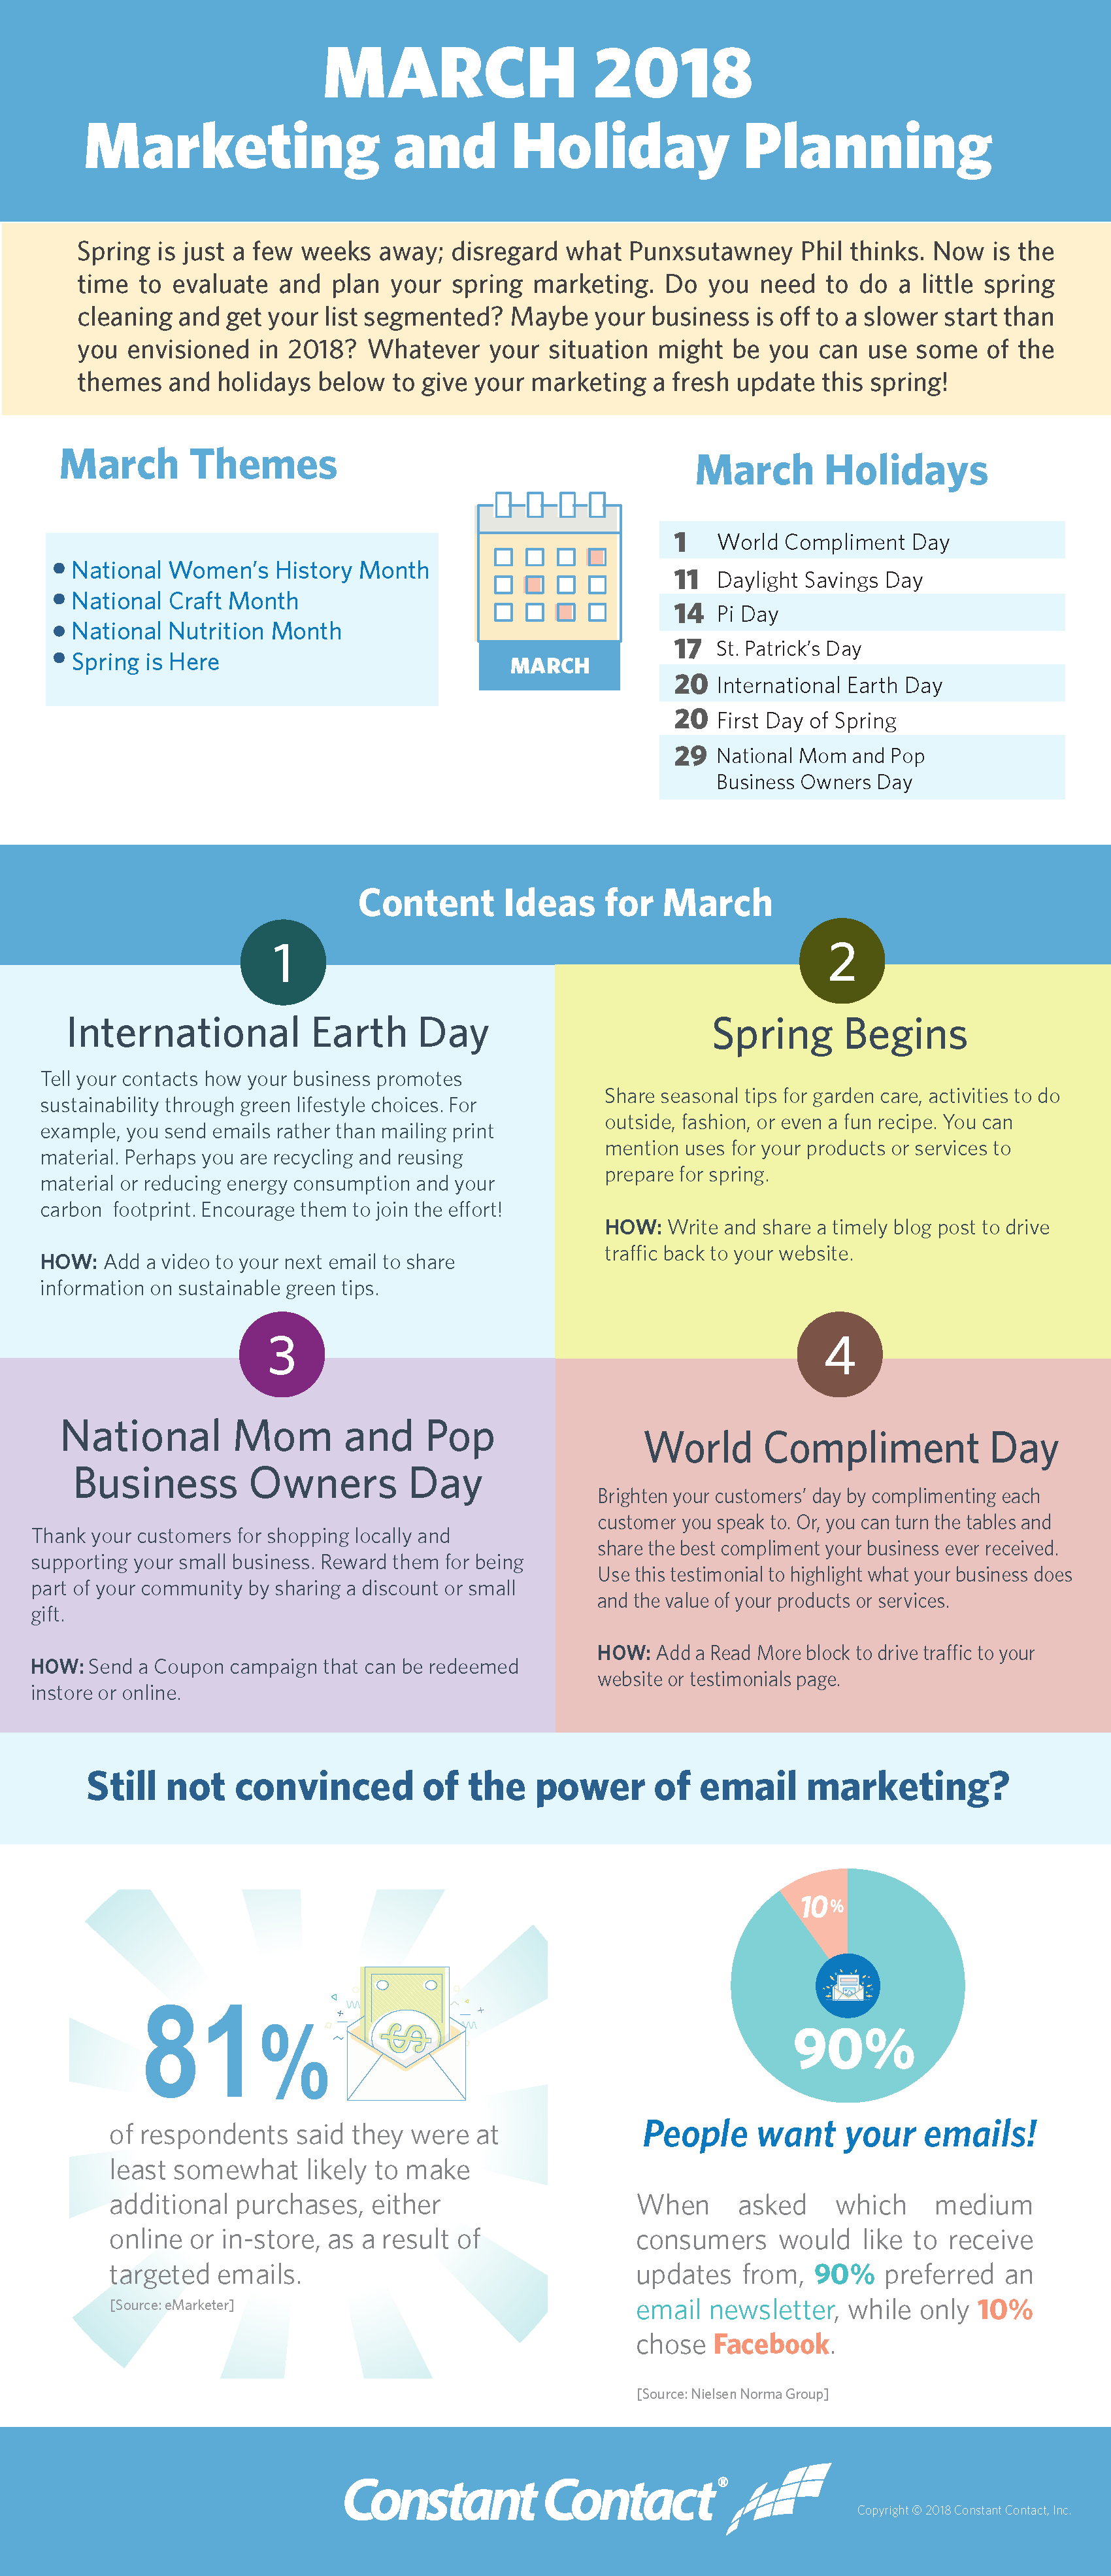 March 2018 Marketing and Holiday Planning | Constant Contact Blogs